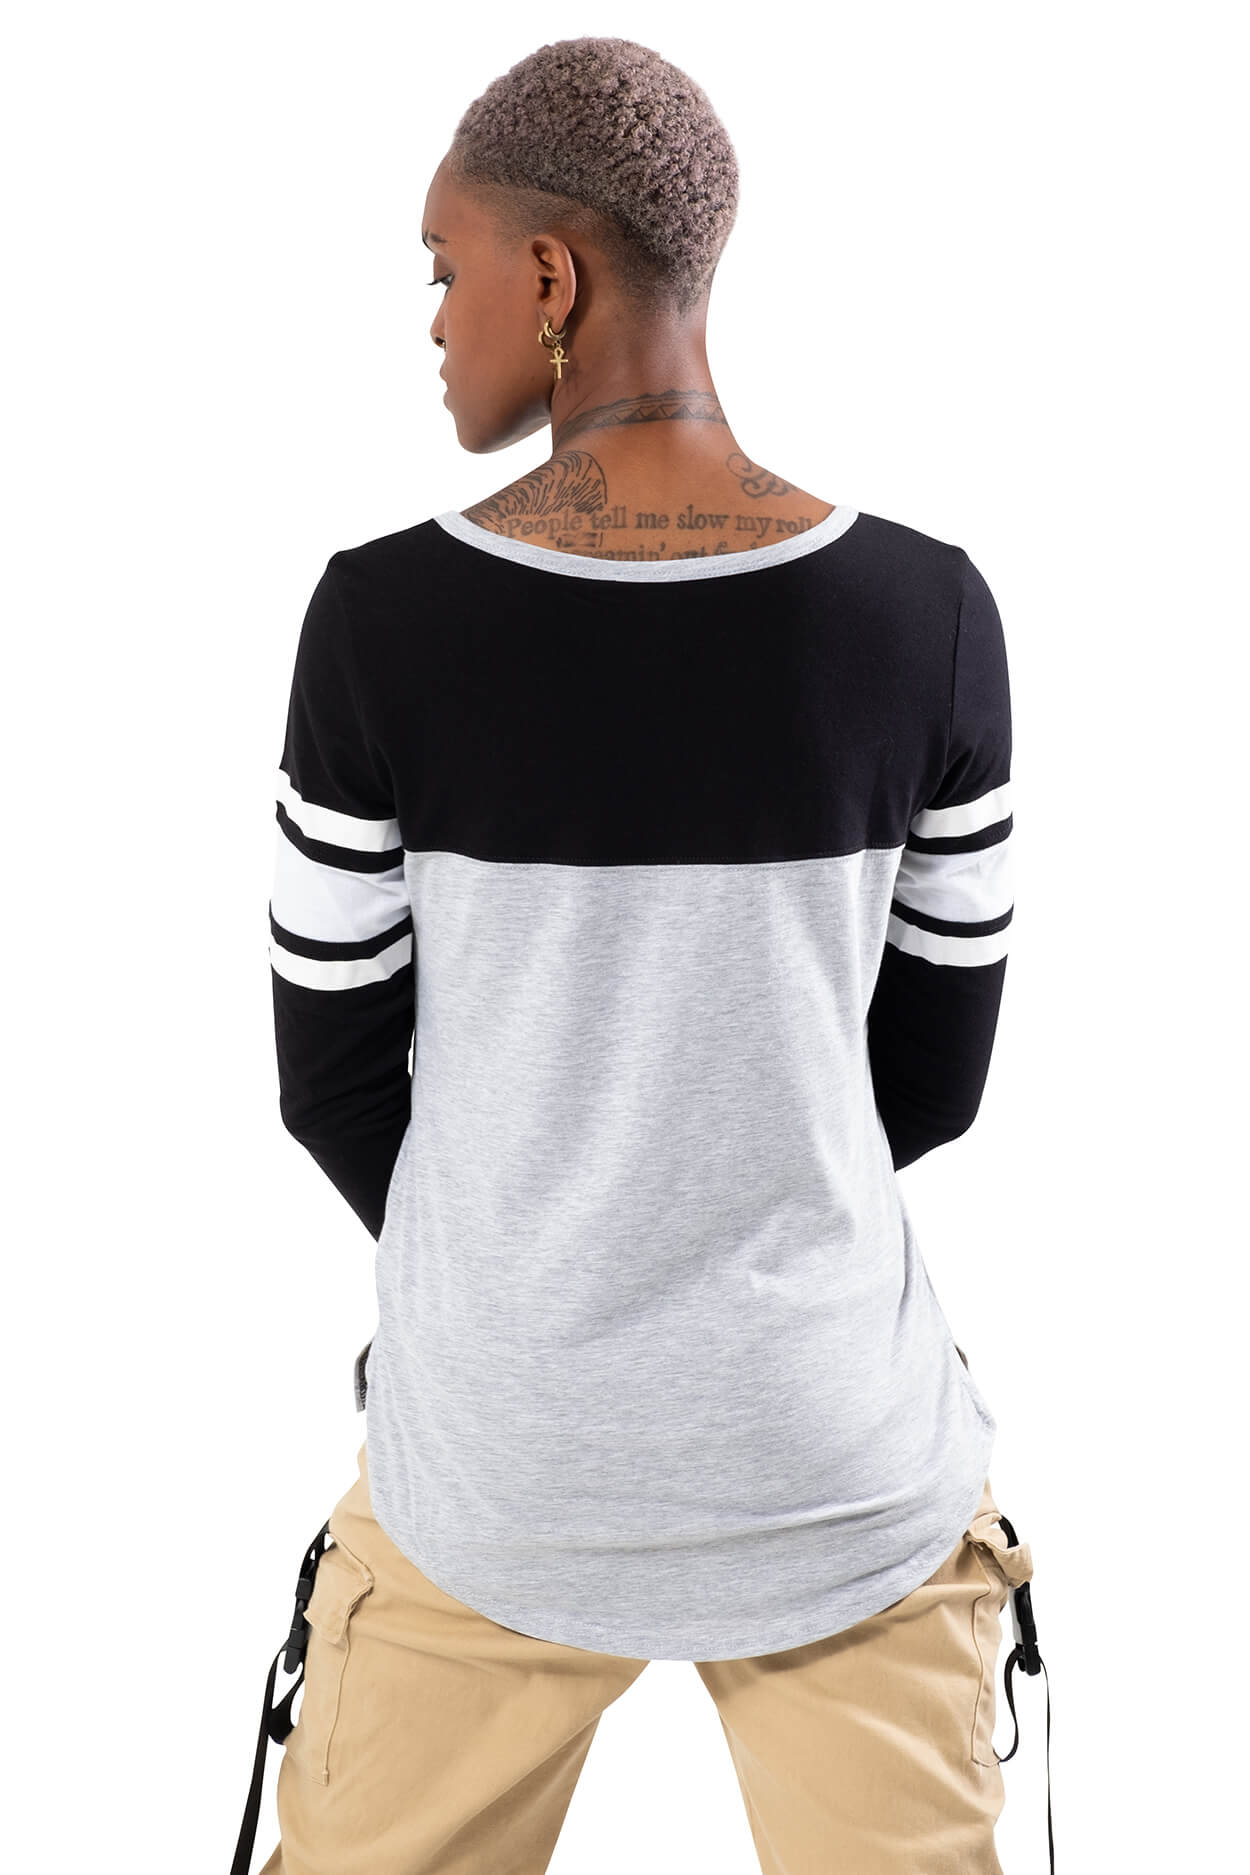 NBA Brooklyn Nets Women's Baseball Tee|Brooklyn Nets